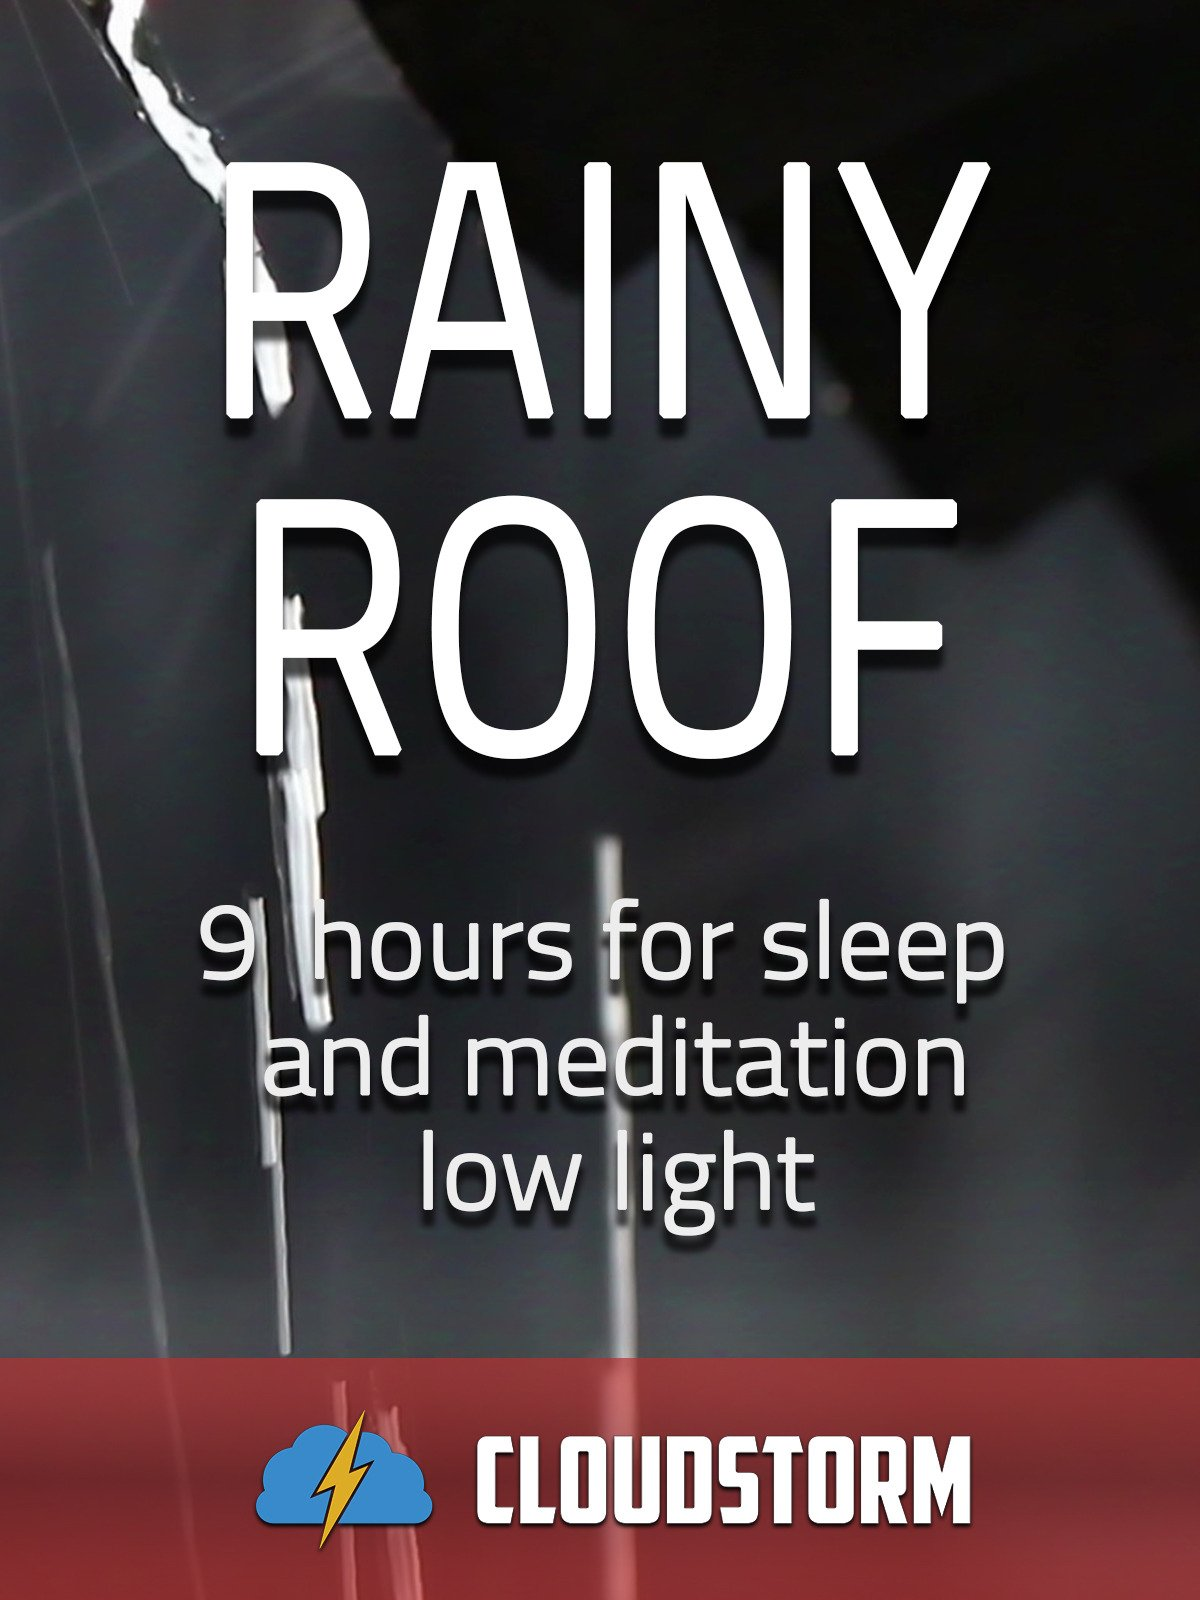 Rainy roof, 9 hours for Sleep and Meditation, low light